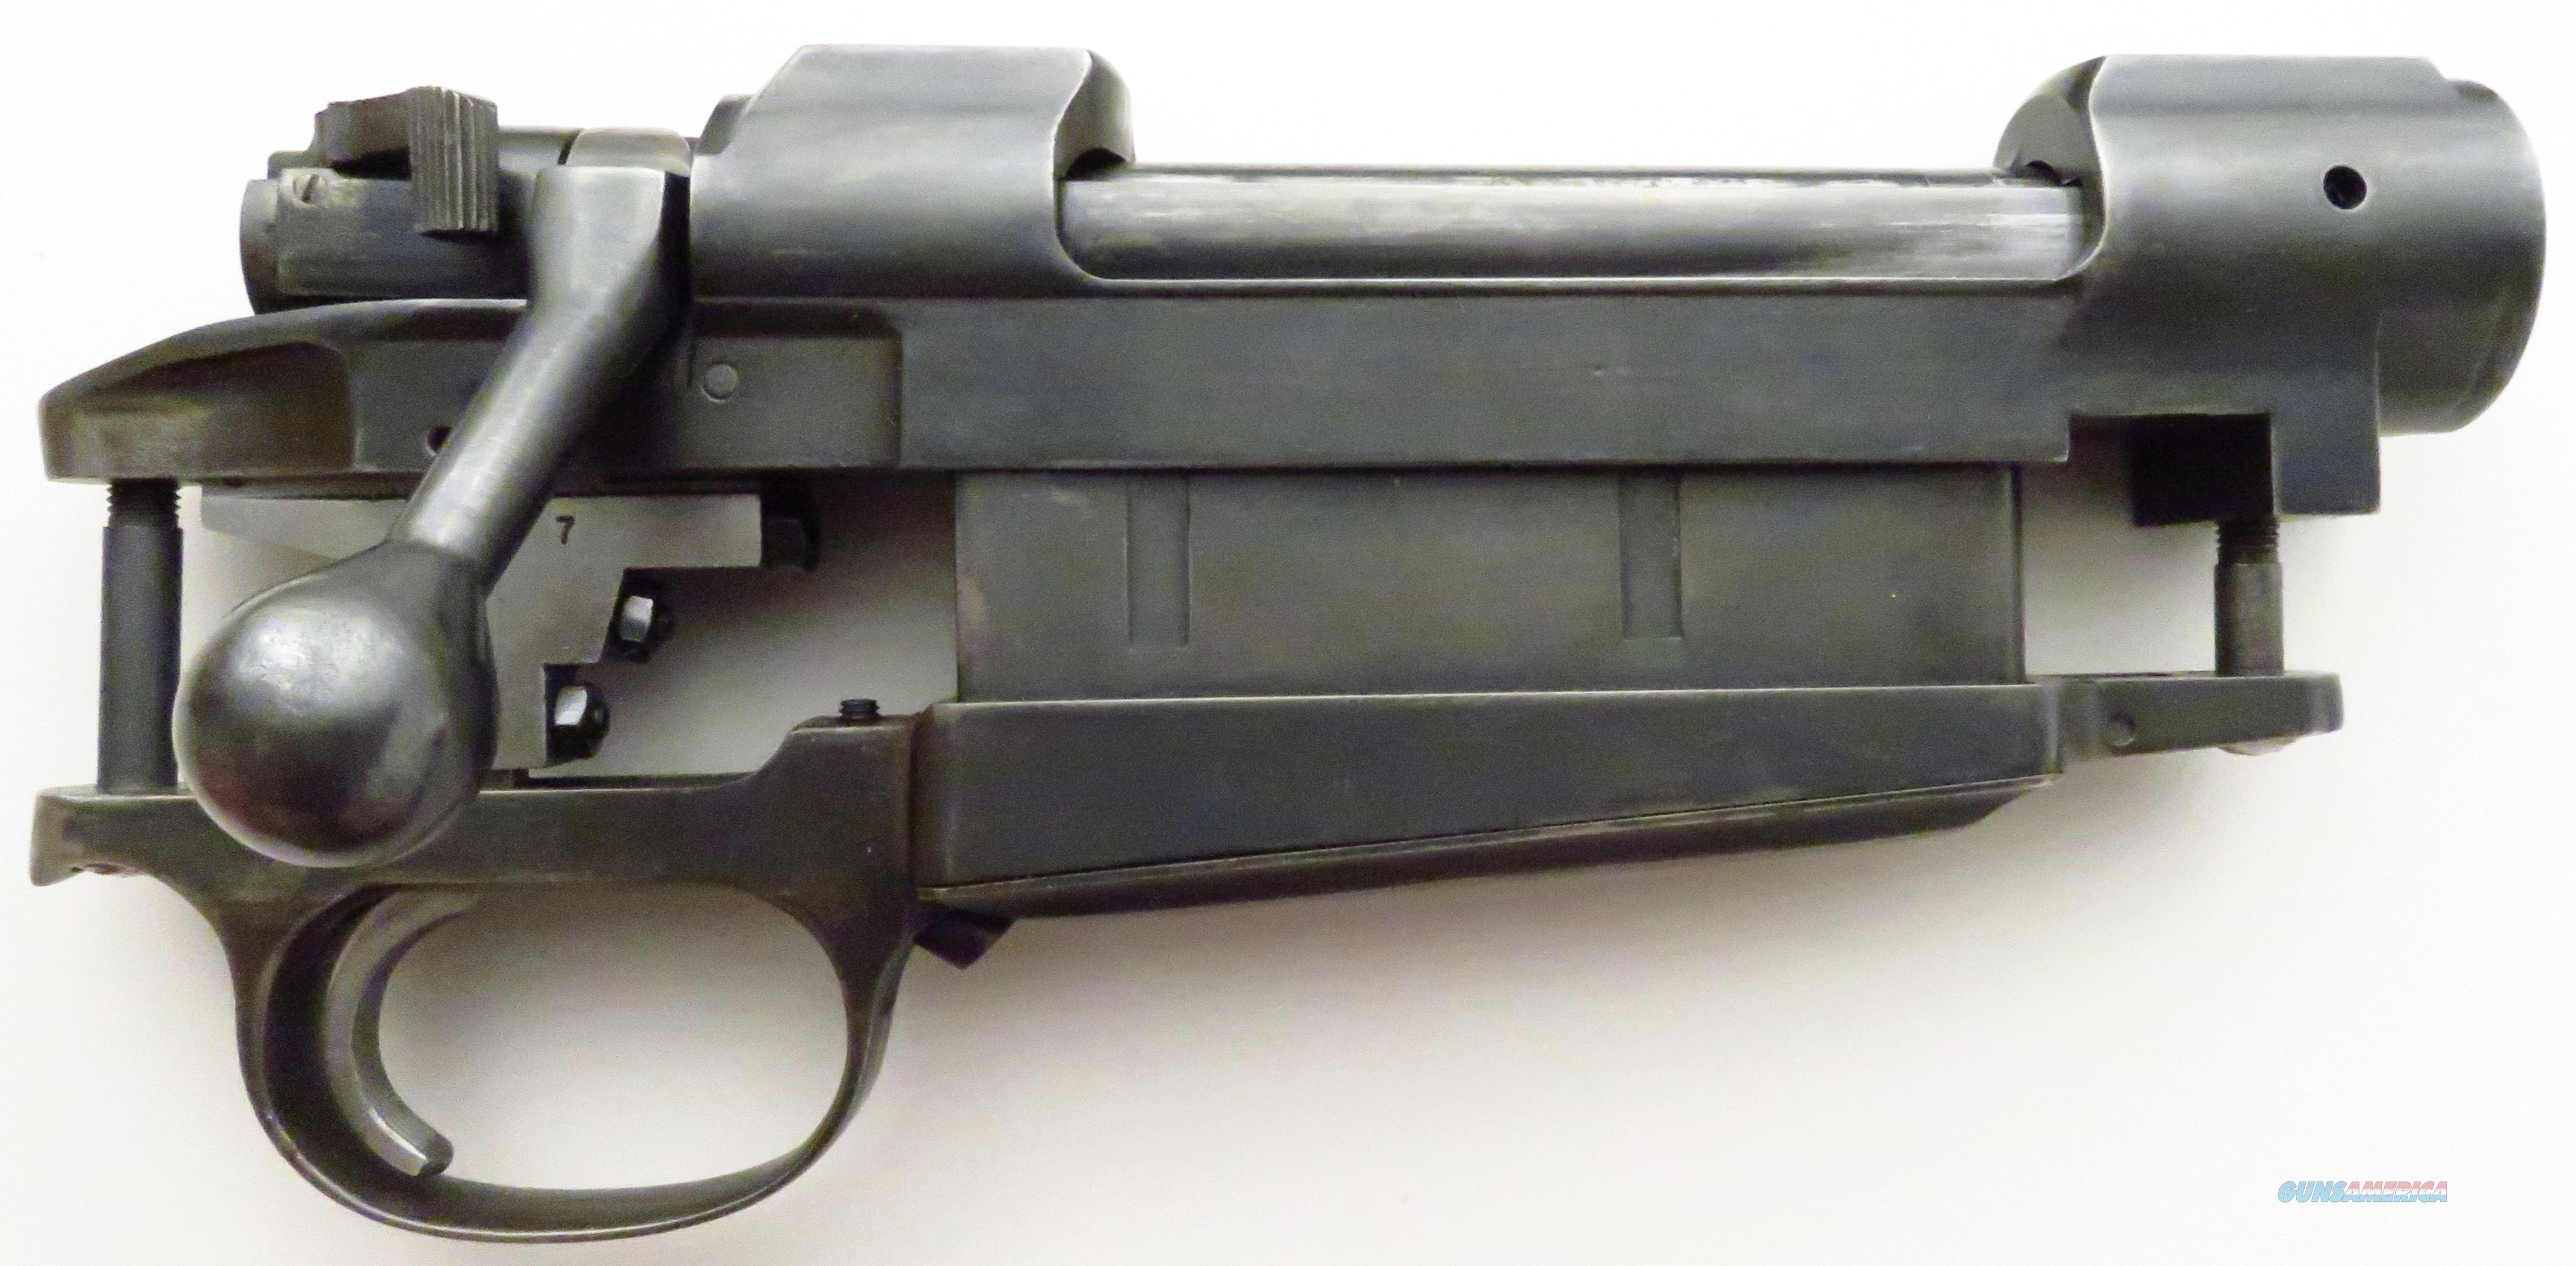 Bauska BBR-02 long magnum action, never barreled  Non-Guns > Miscellaneous